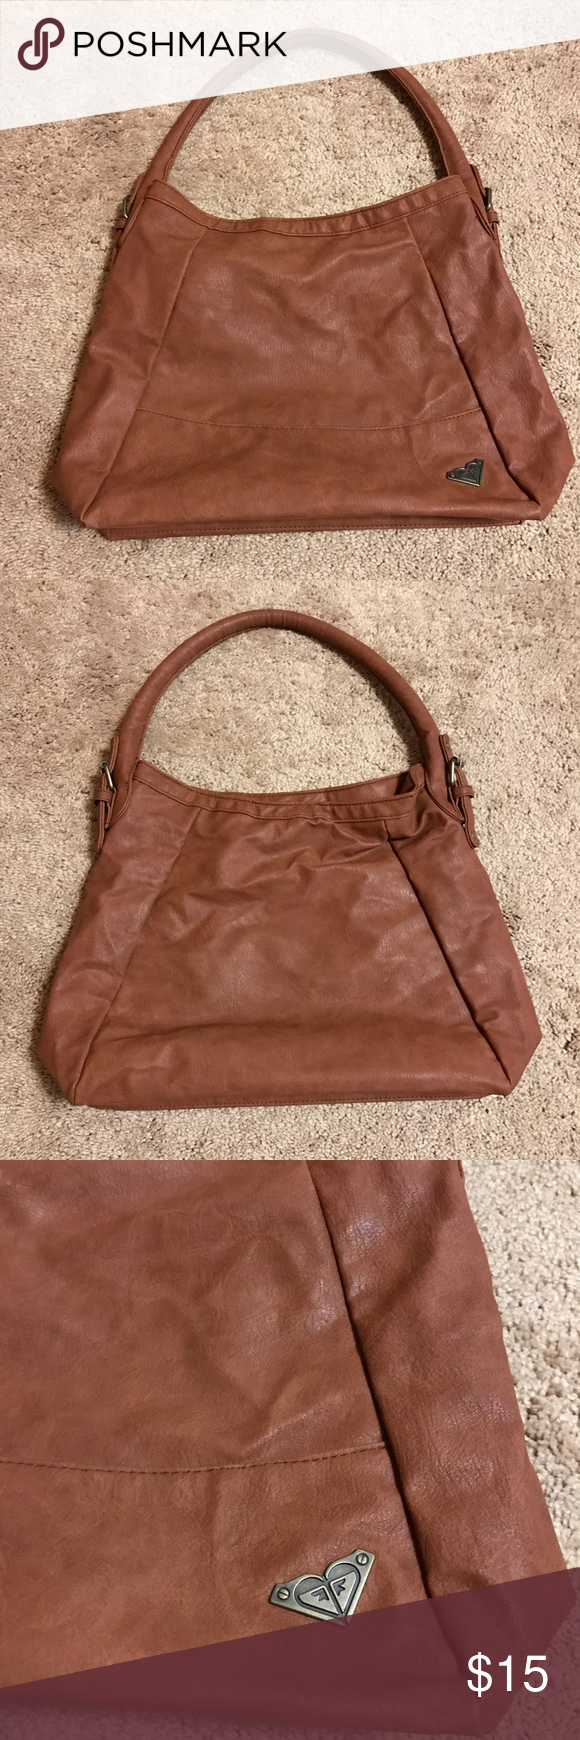 Roxy Shoulder Bag Selling a gently used tan Roxy Shoulder Bag.  3 pockets inside (one of them being zippered and the other two are open at the top). Tan in color and made out of faux leather. Roxy Bags Shoulder Bags